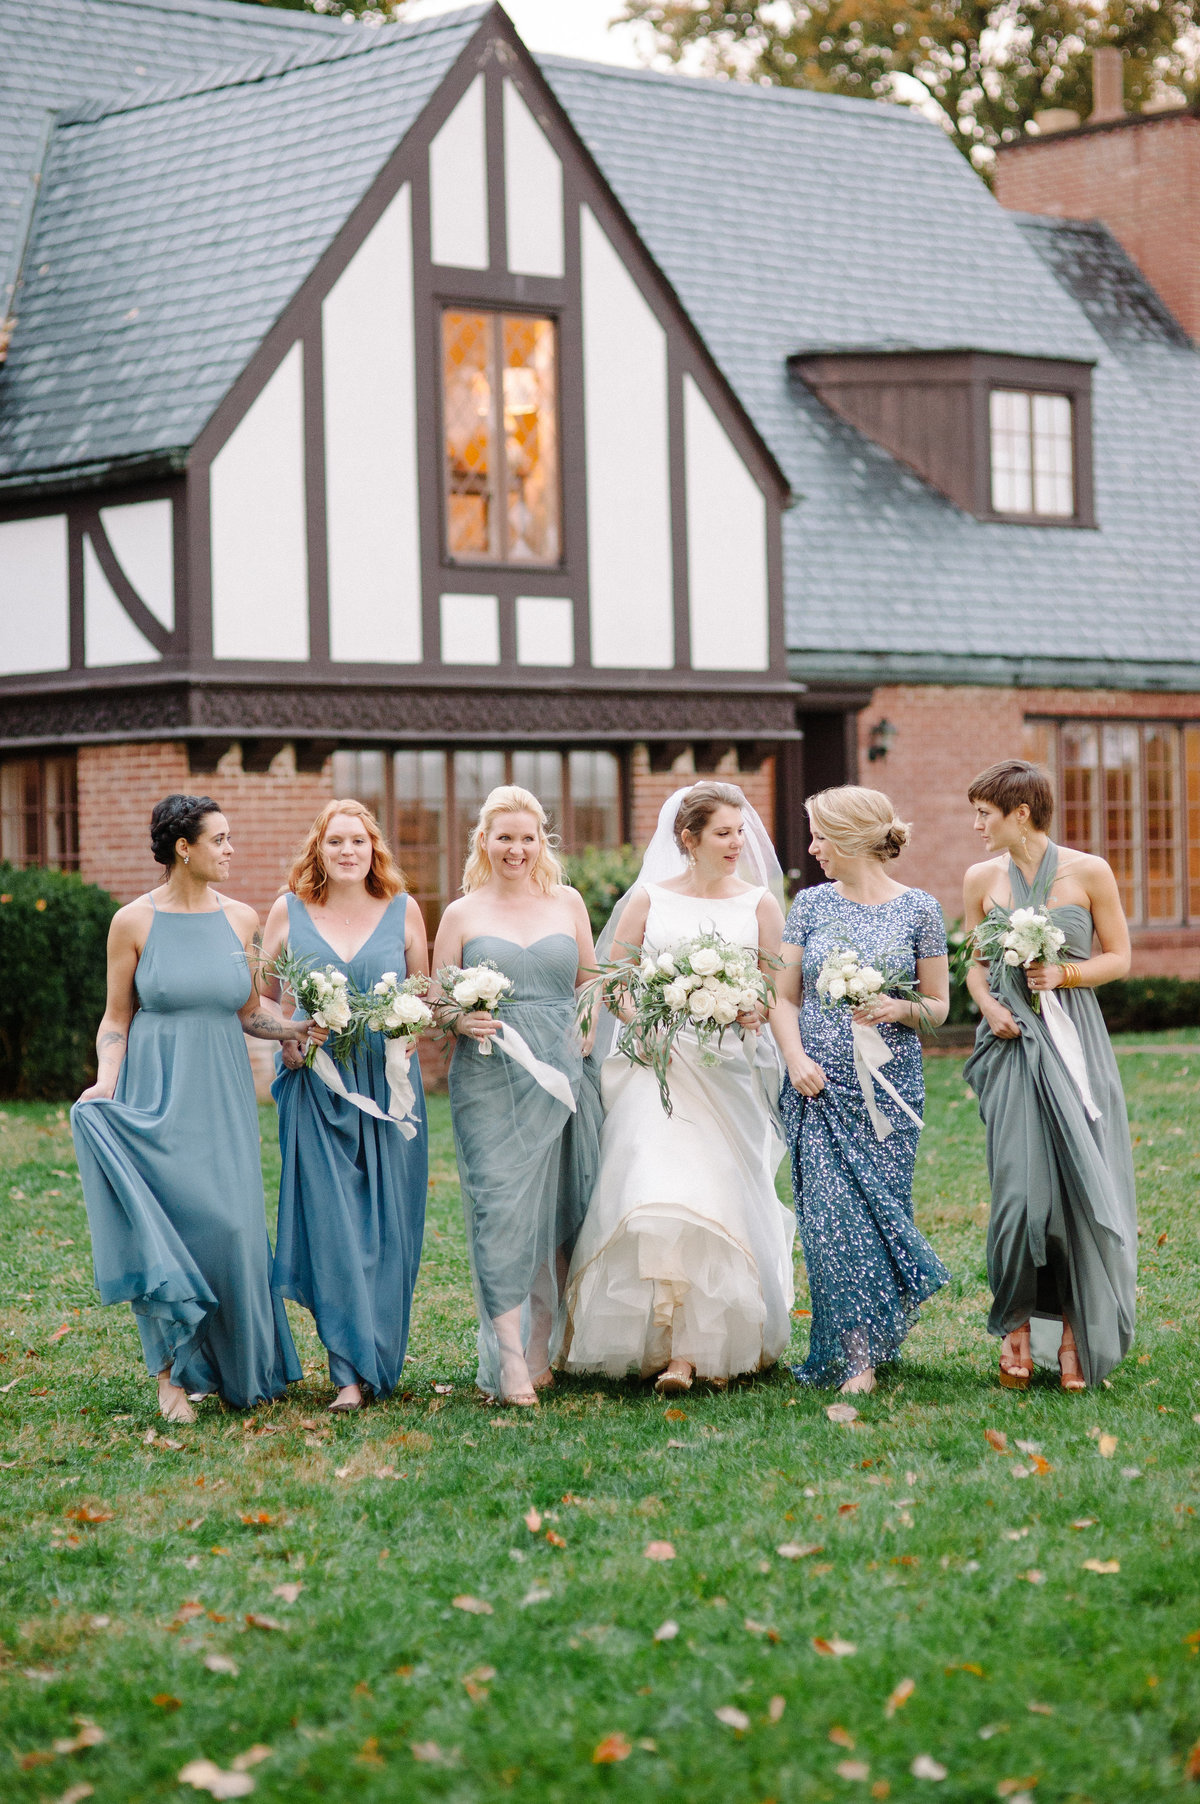 Charlottesville Fall Wedding with wedding planner For Love of Love